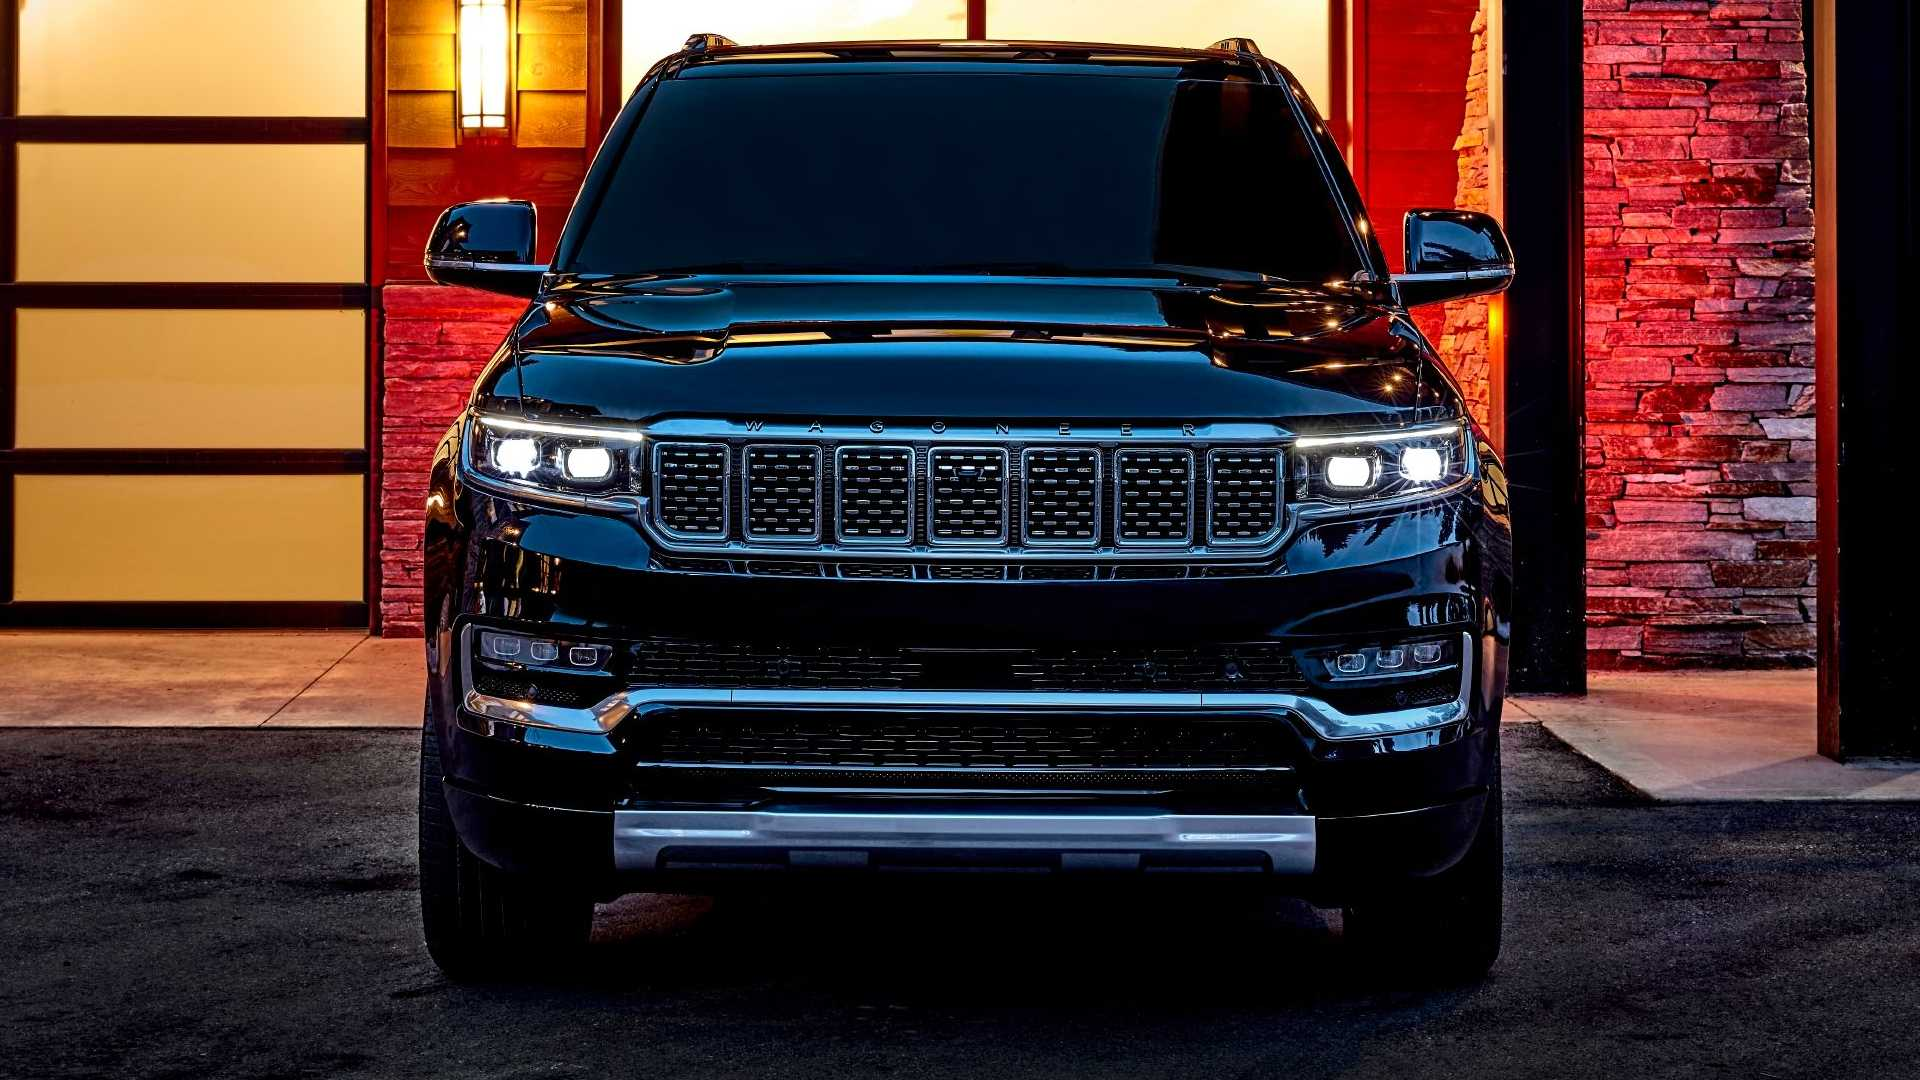 2022-jeep-grand-wagoneer-exterior-front-view